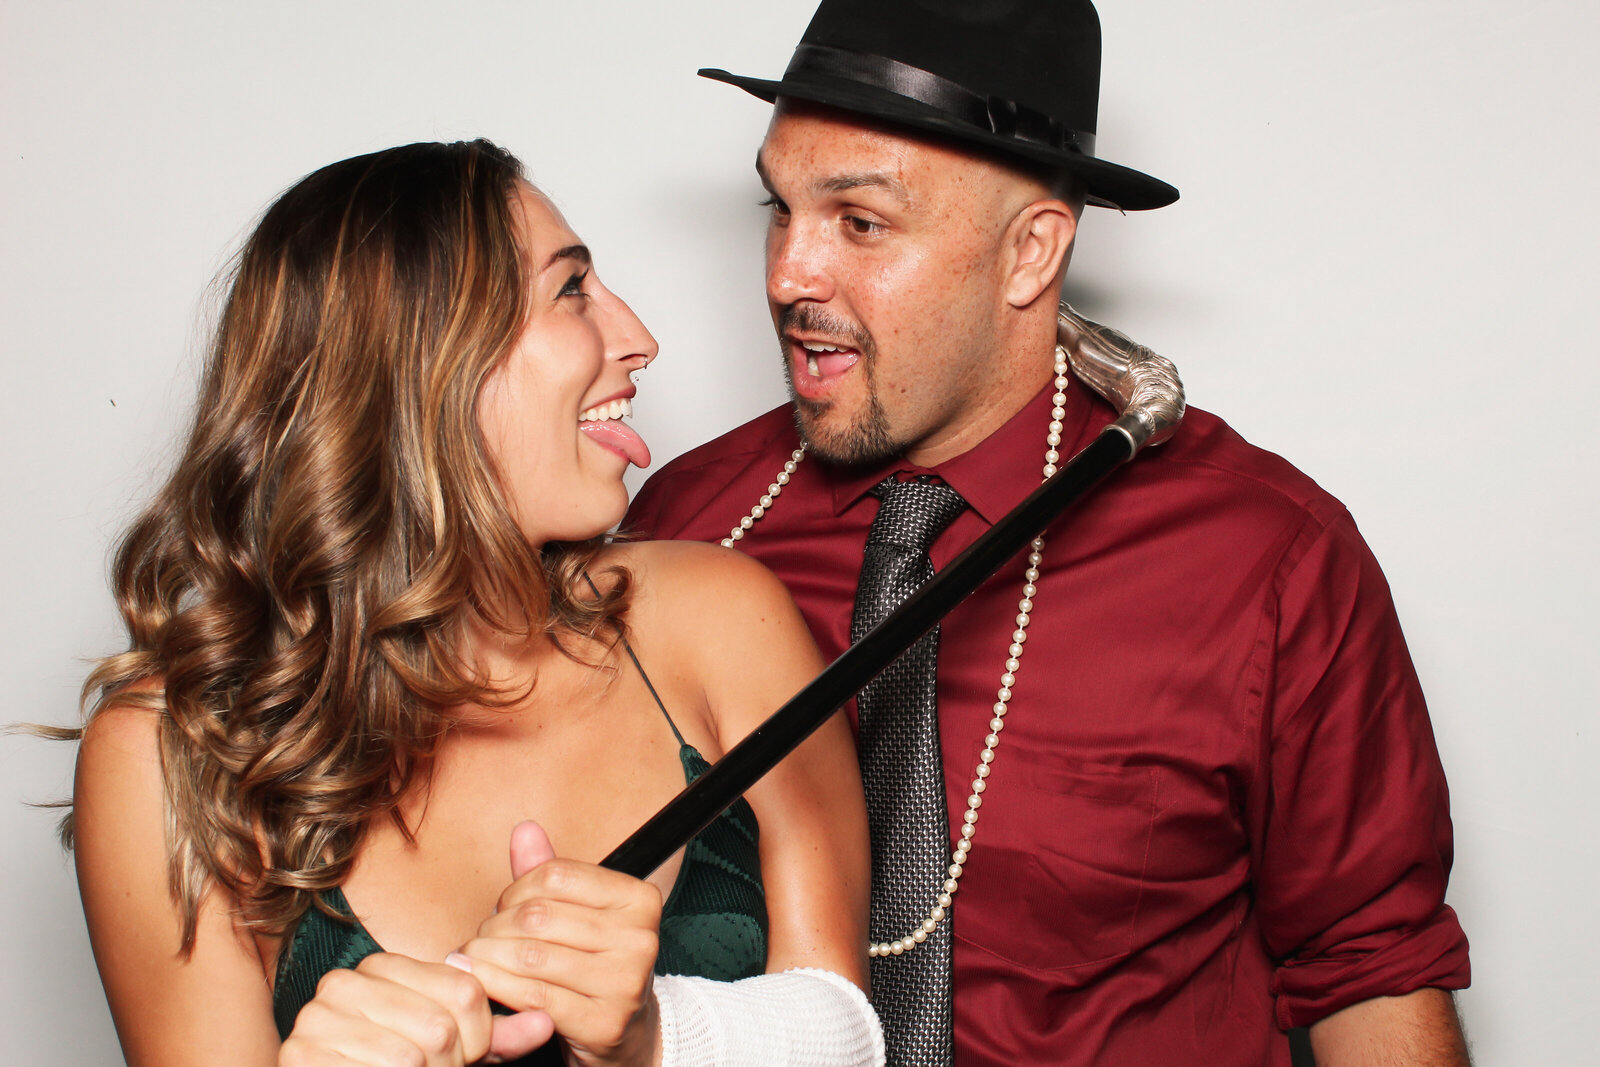 LOS GATOS DJ - Demi & Josh's Photo Booth Photos (color glamour 2 high-res) (55 of 212) copy